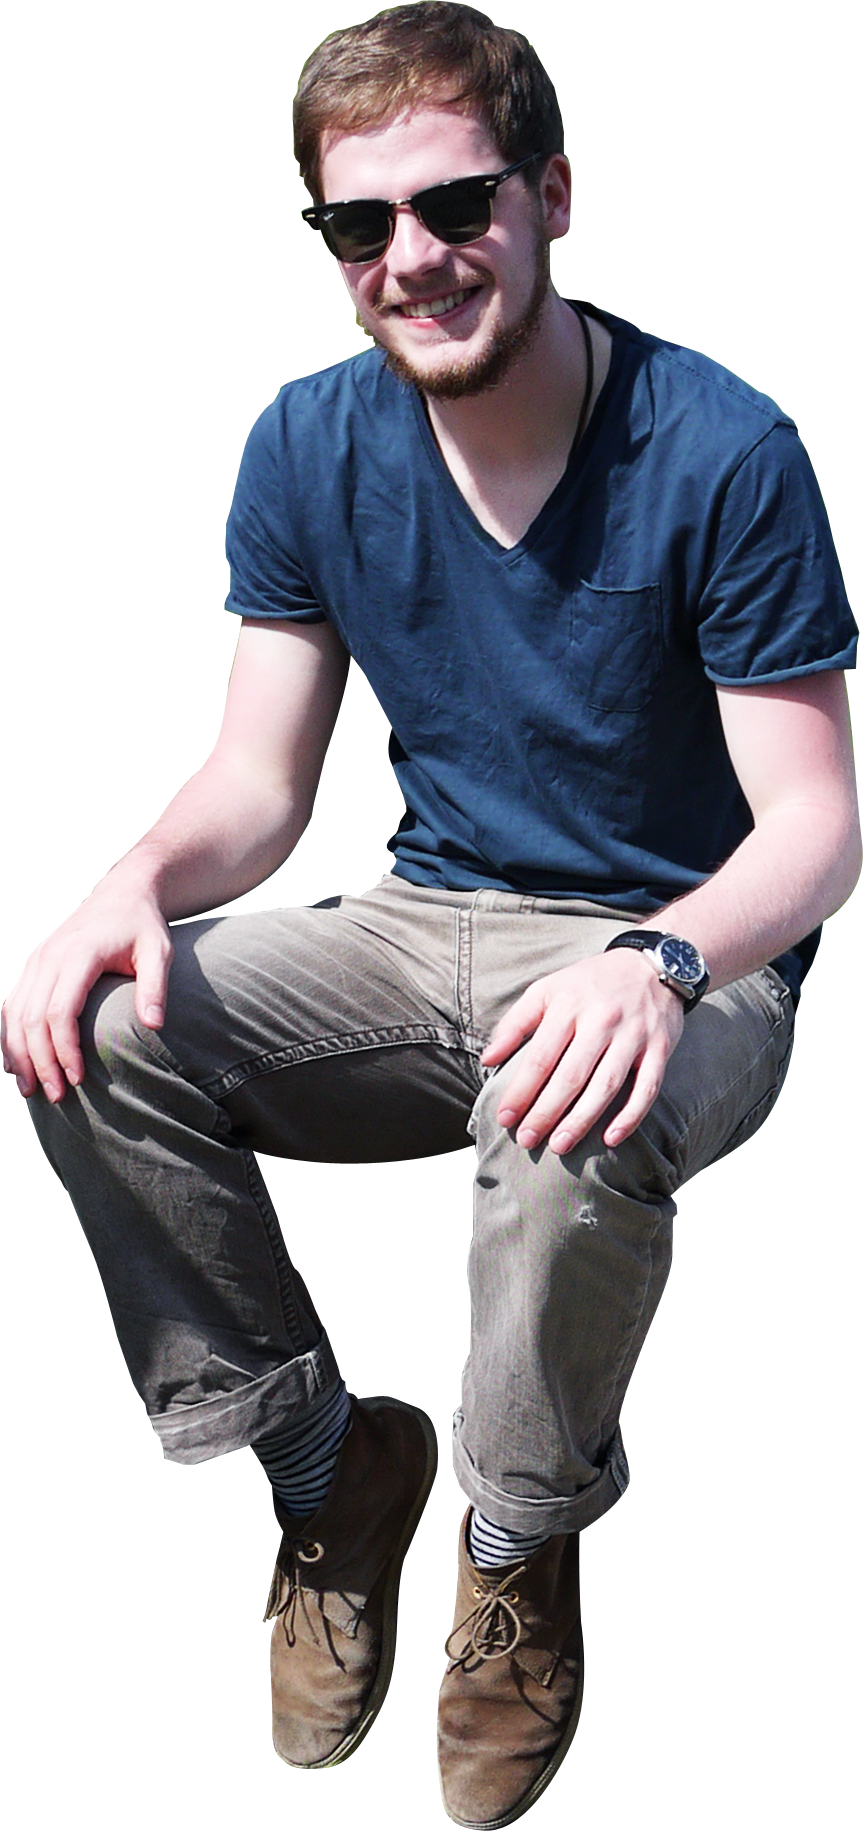 People Sitting Top View Png - Free Transparent PNG ...